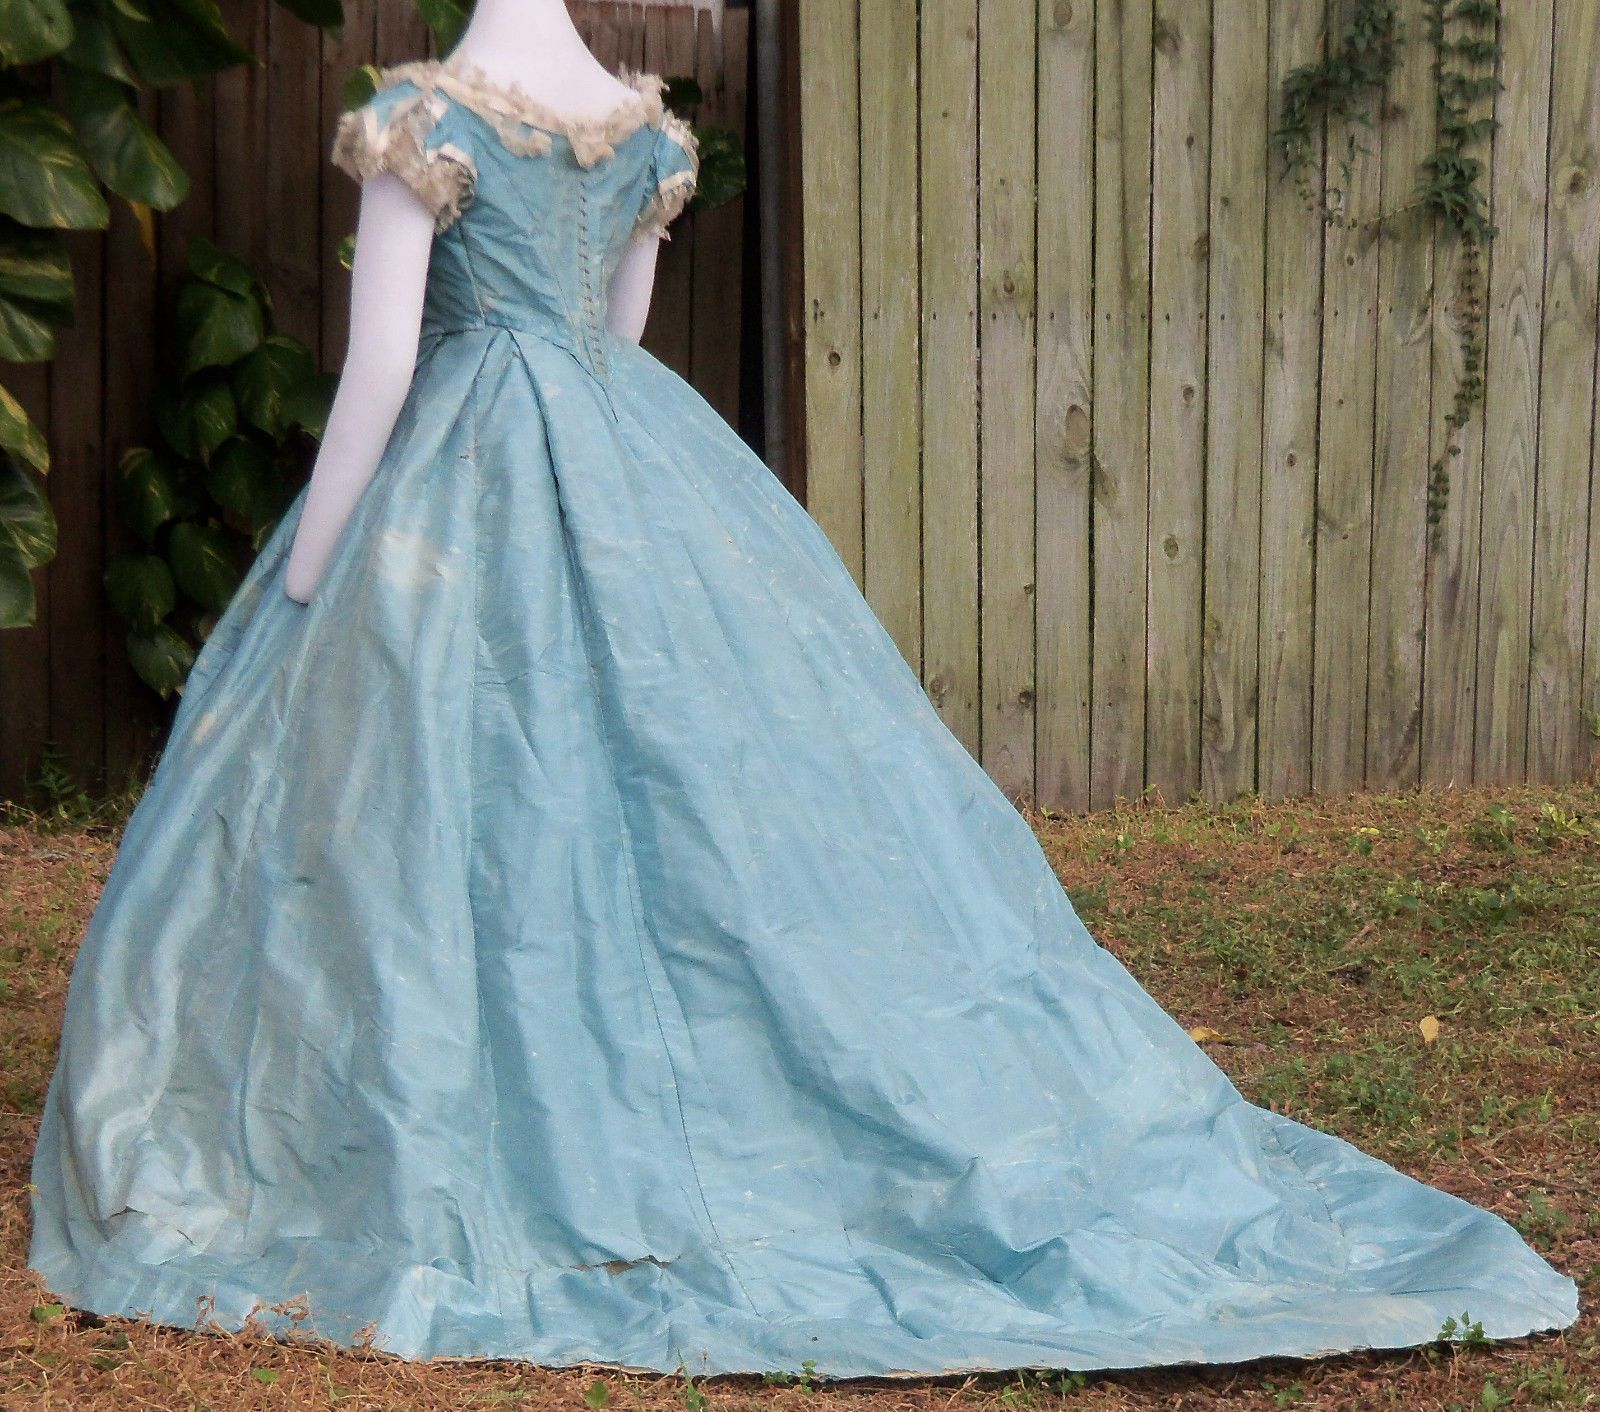 ORIGINAL CIVIL WAR ERA BALL GOWN c.1865 | Ball gowns, Civil wars and ...